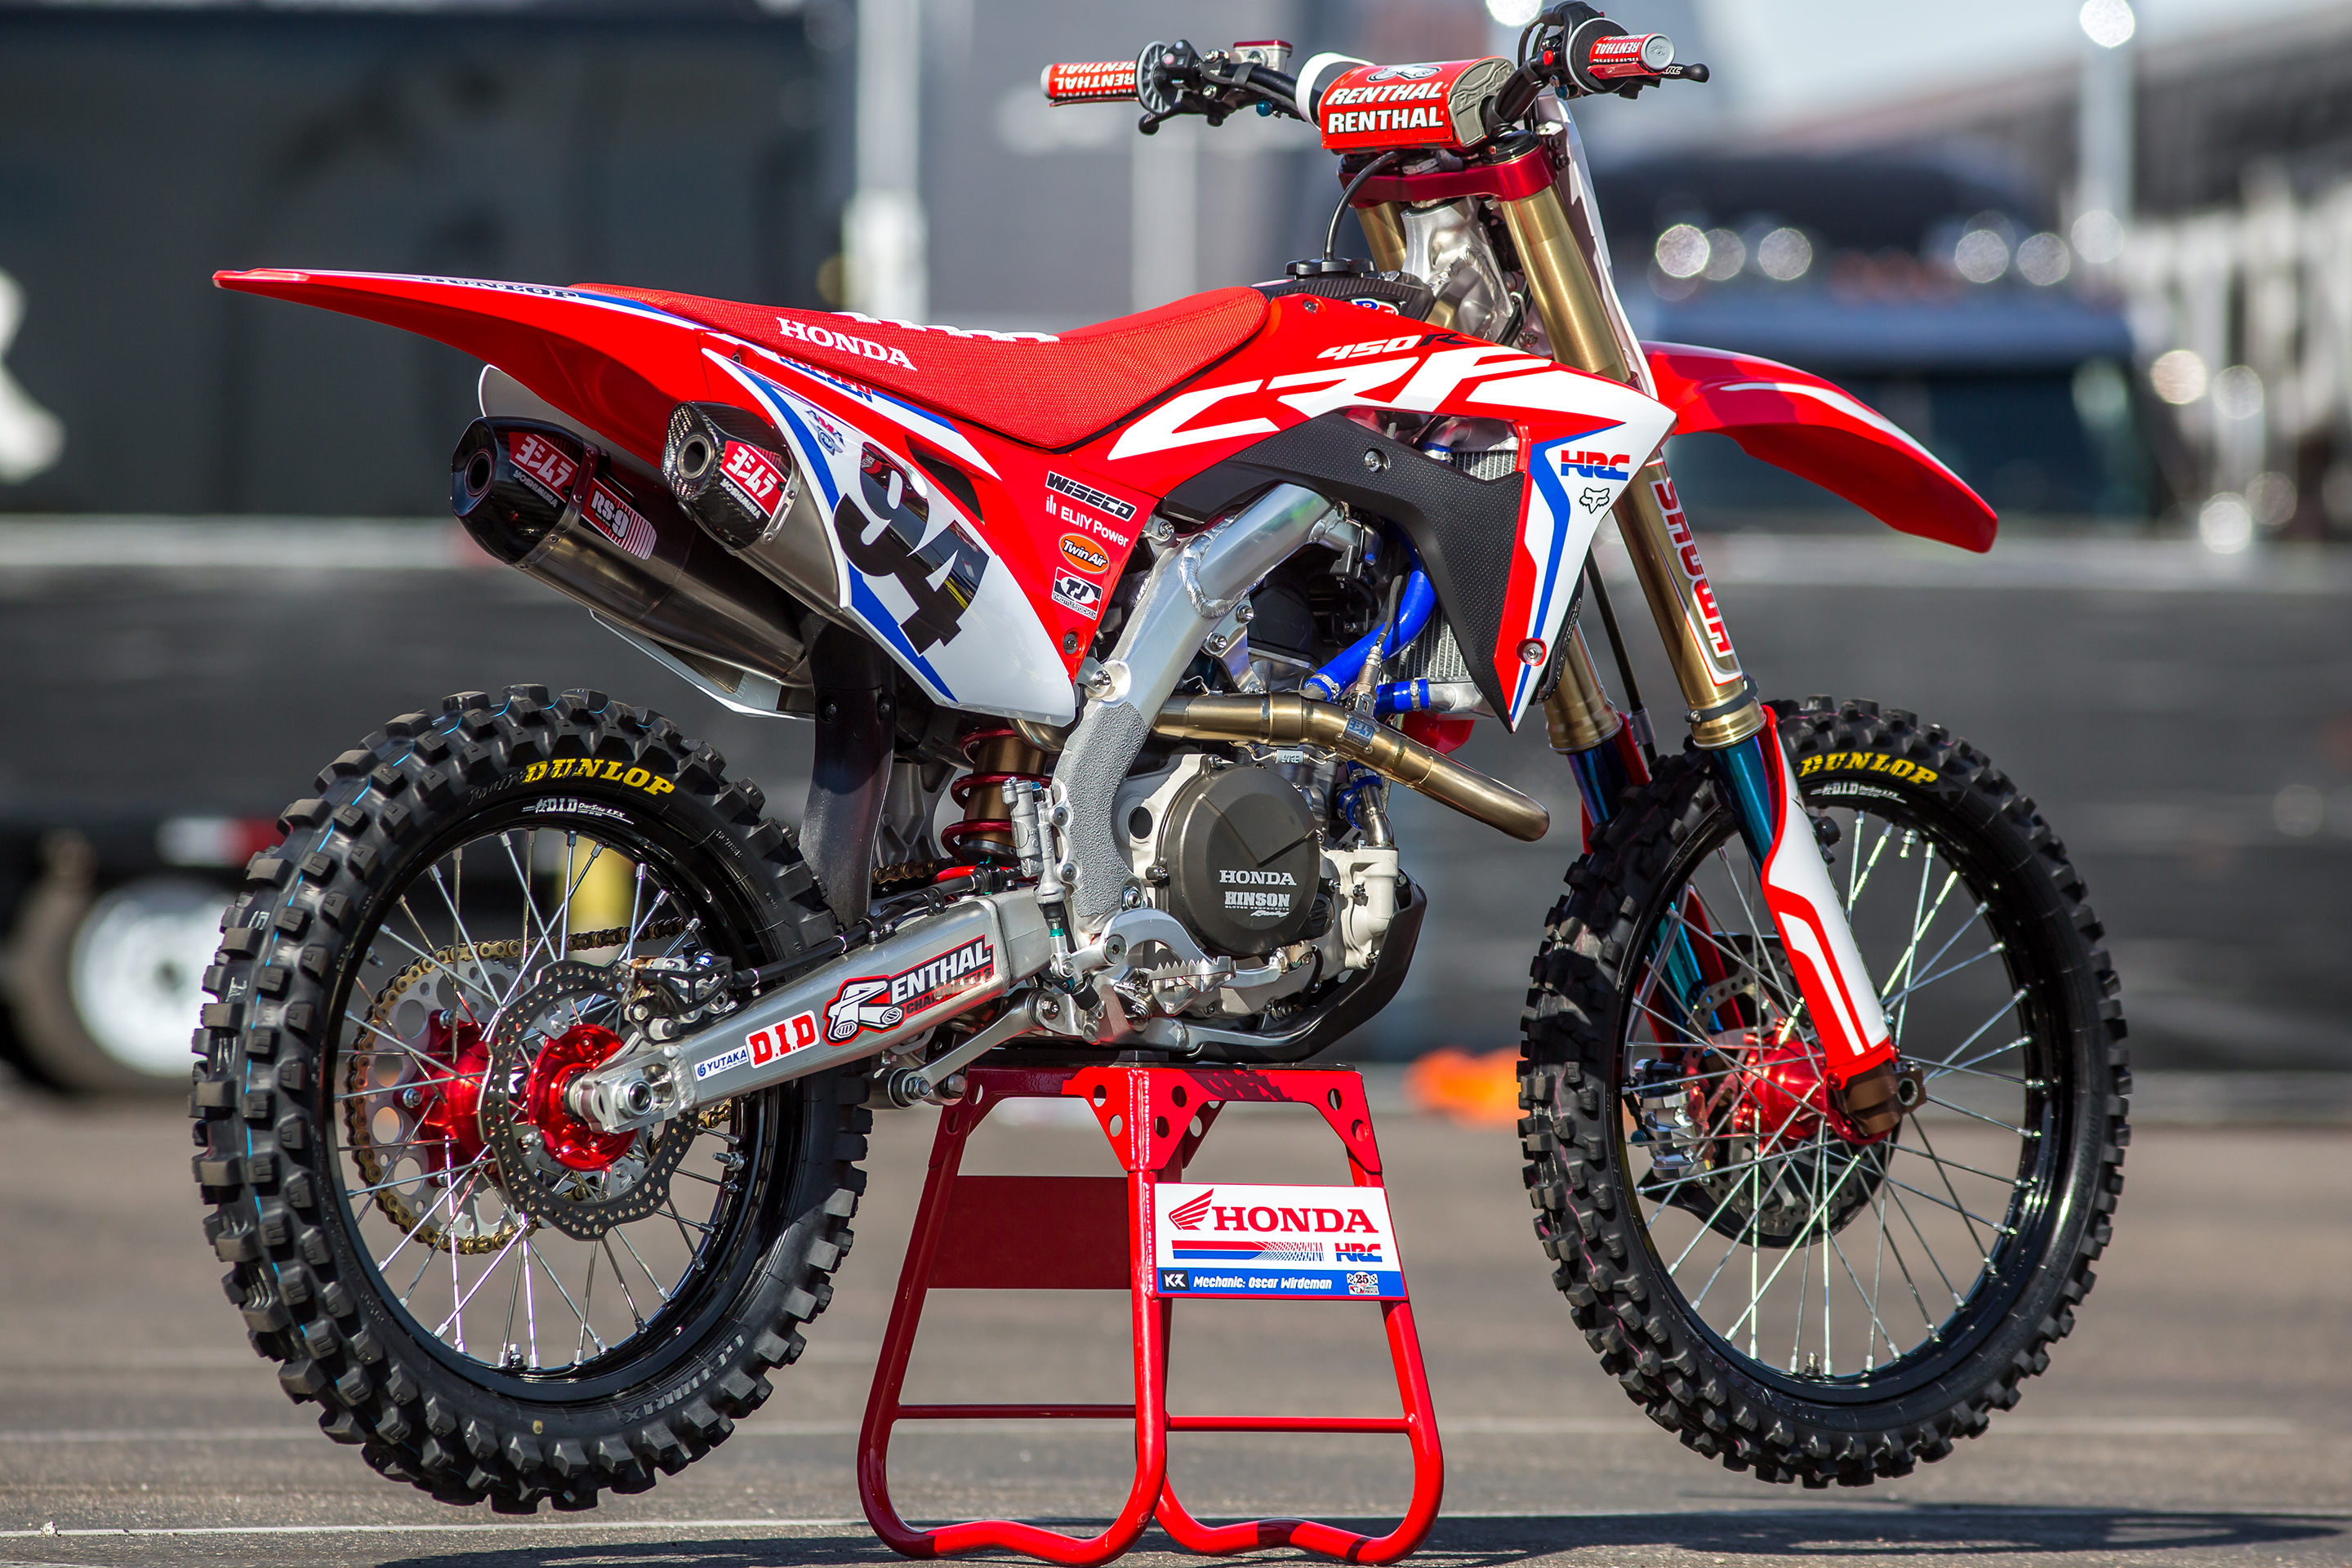 We check out all the details that make Ken Roczen's factory Honda so trick